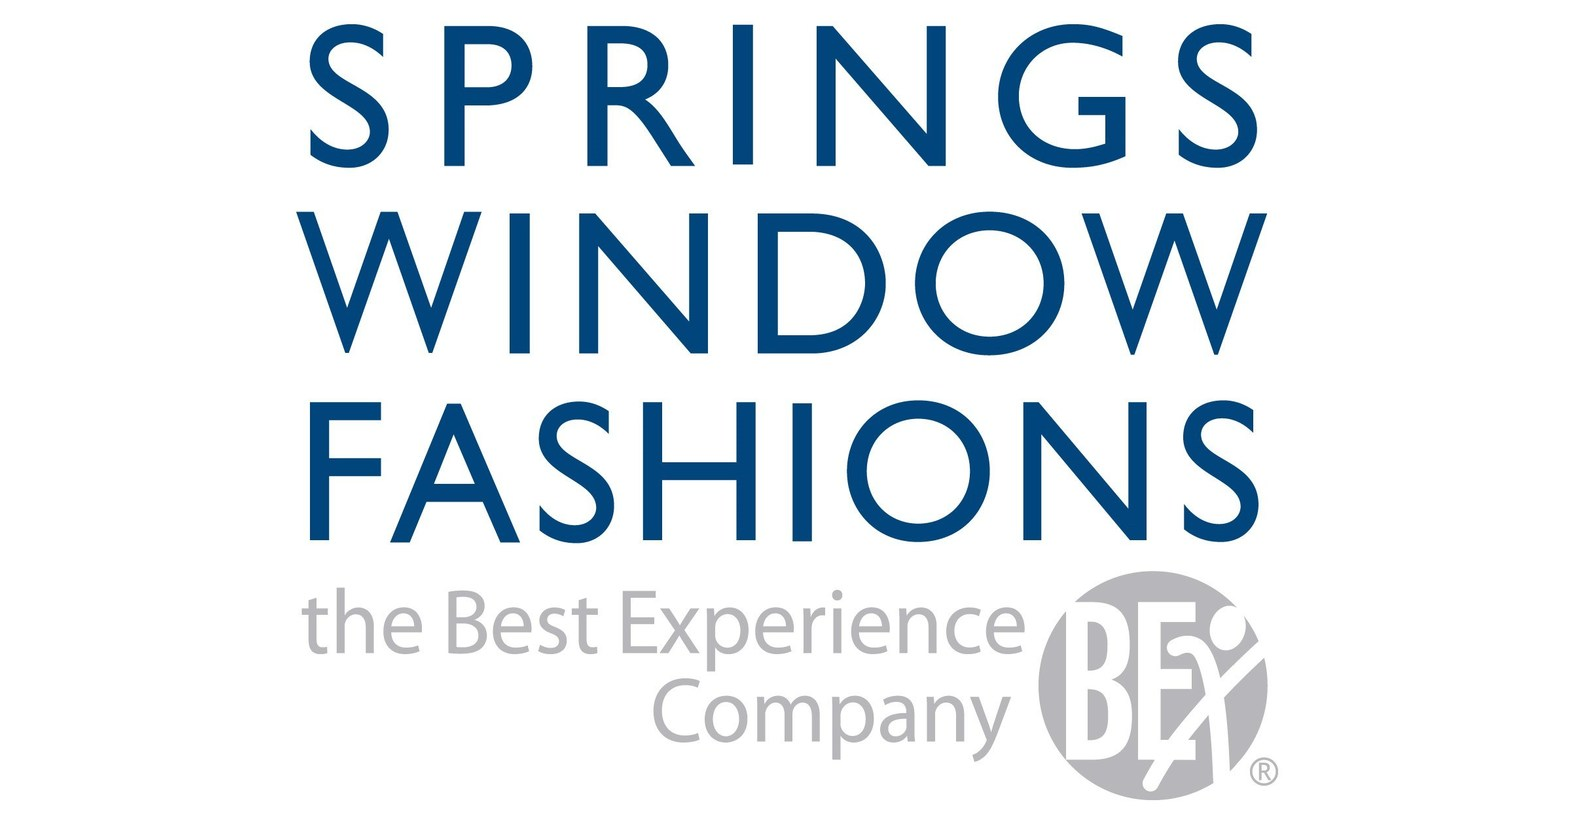 Springs Window Fashions Appoints Two to Canadian Sales Team